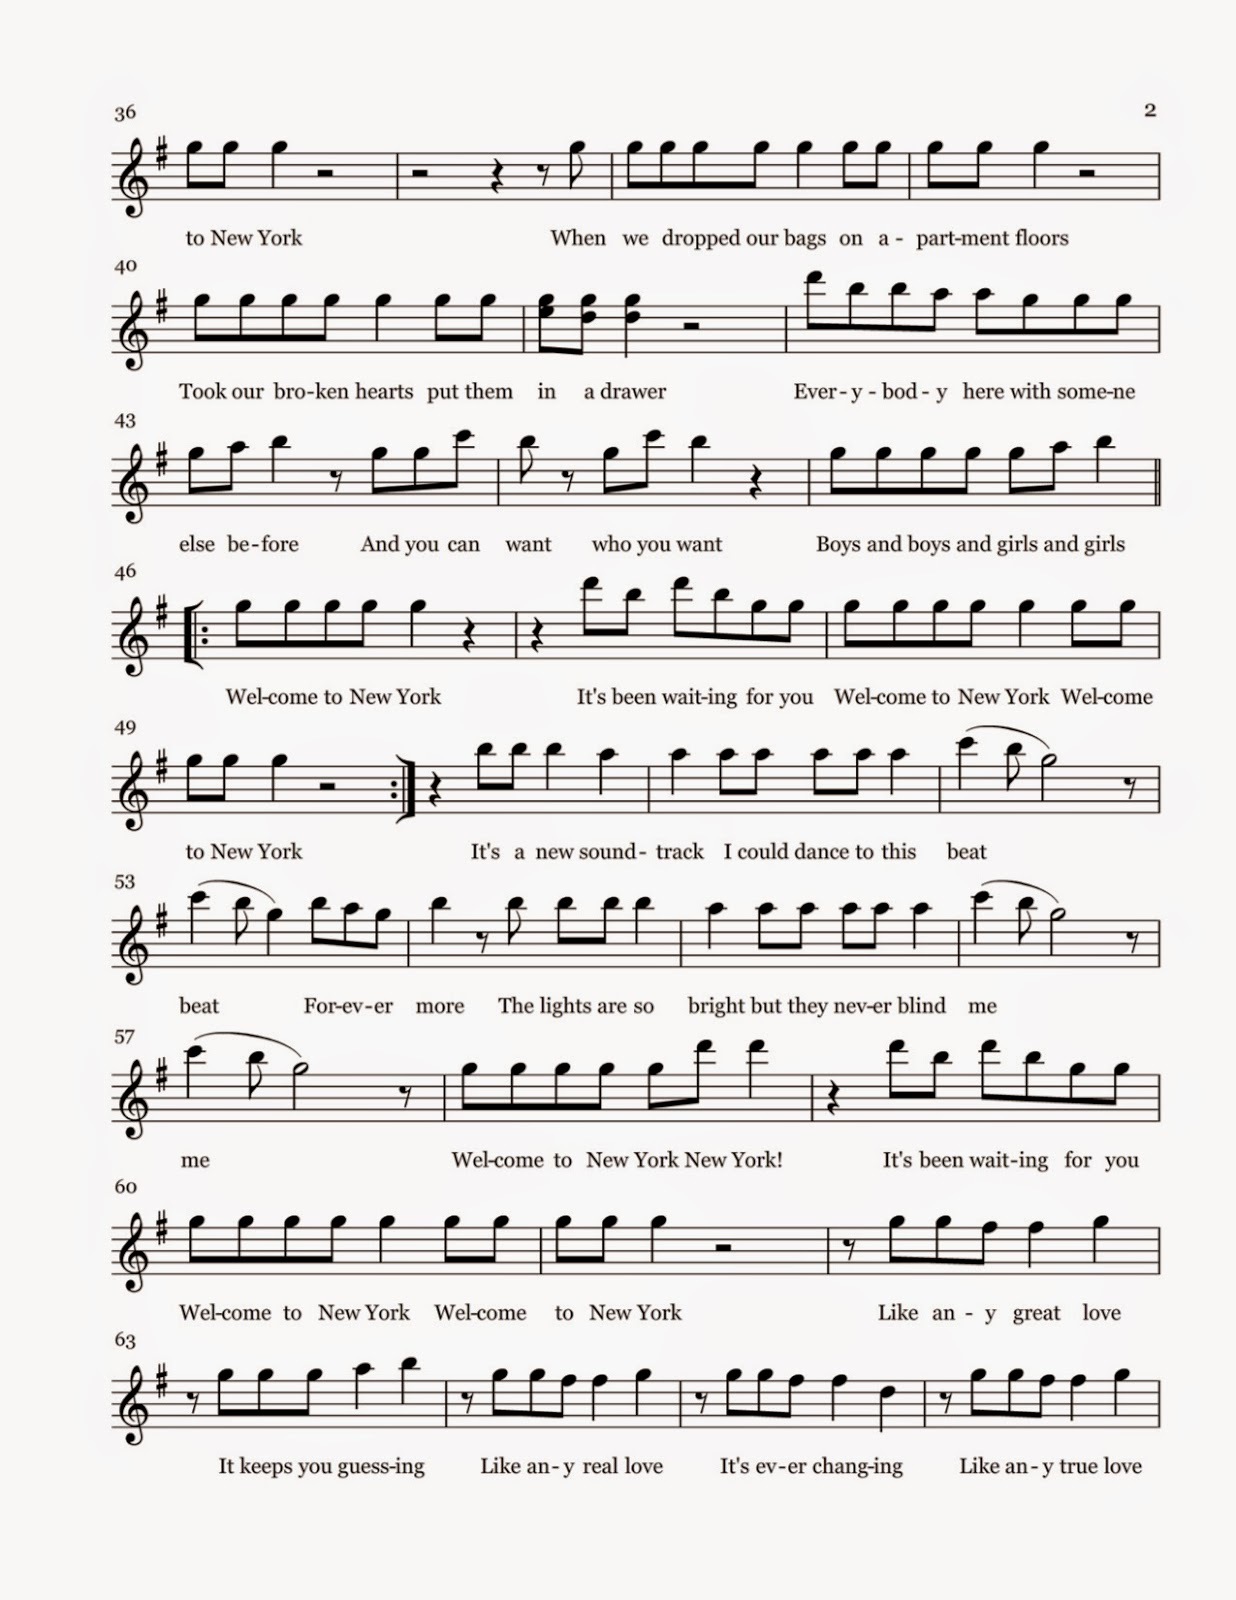 Flute sheet music welcome to new york sheet music pdf download hexwebz Image collections